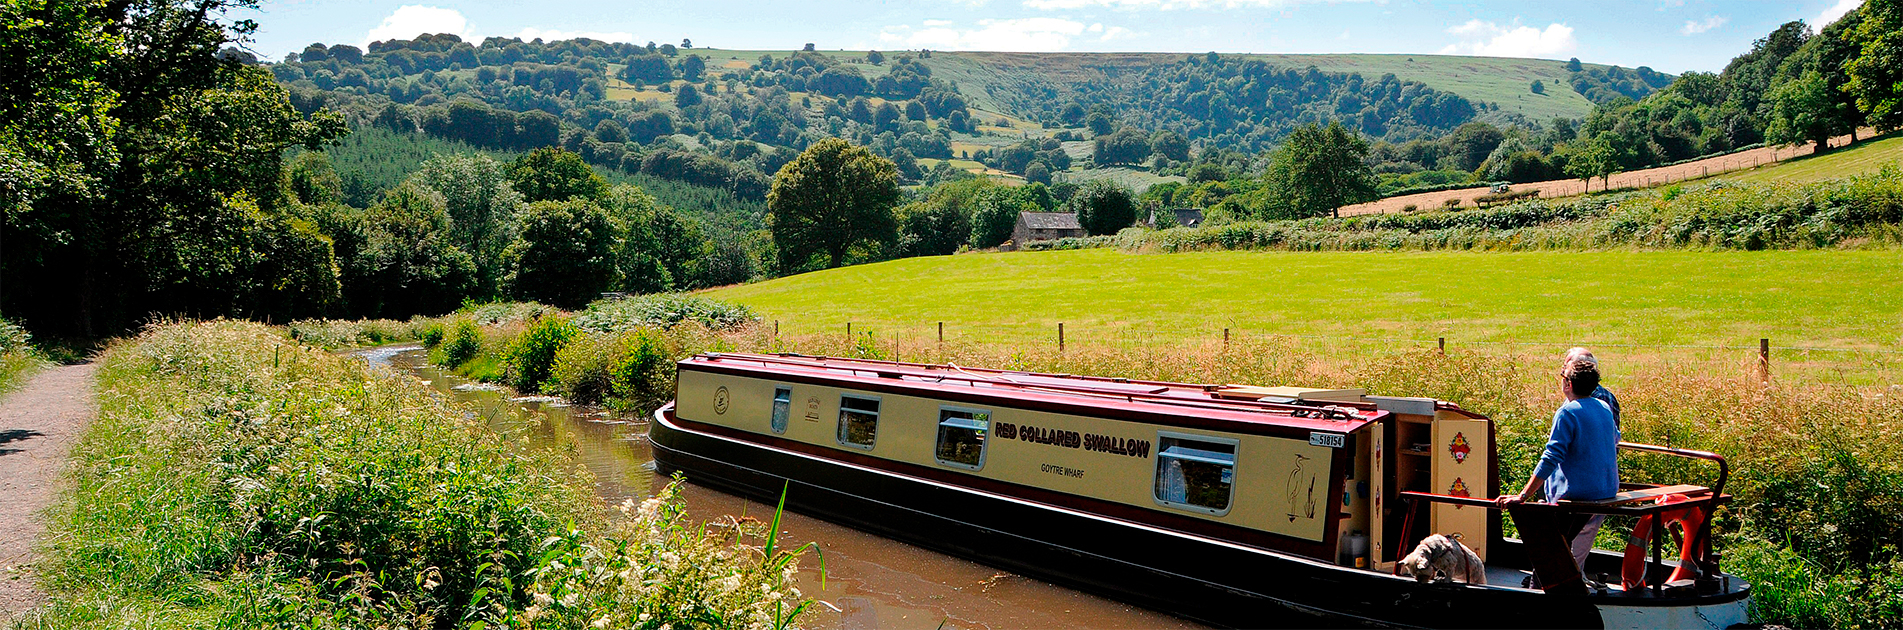 Narrowboat in the Welsh countryside